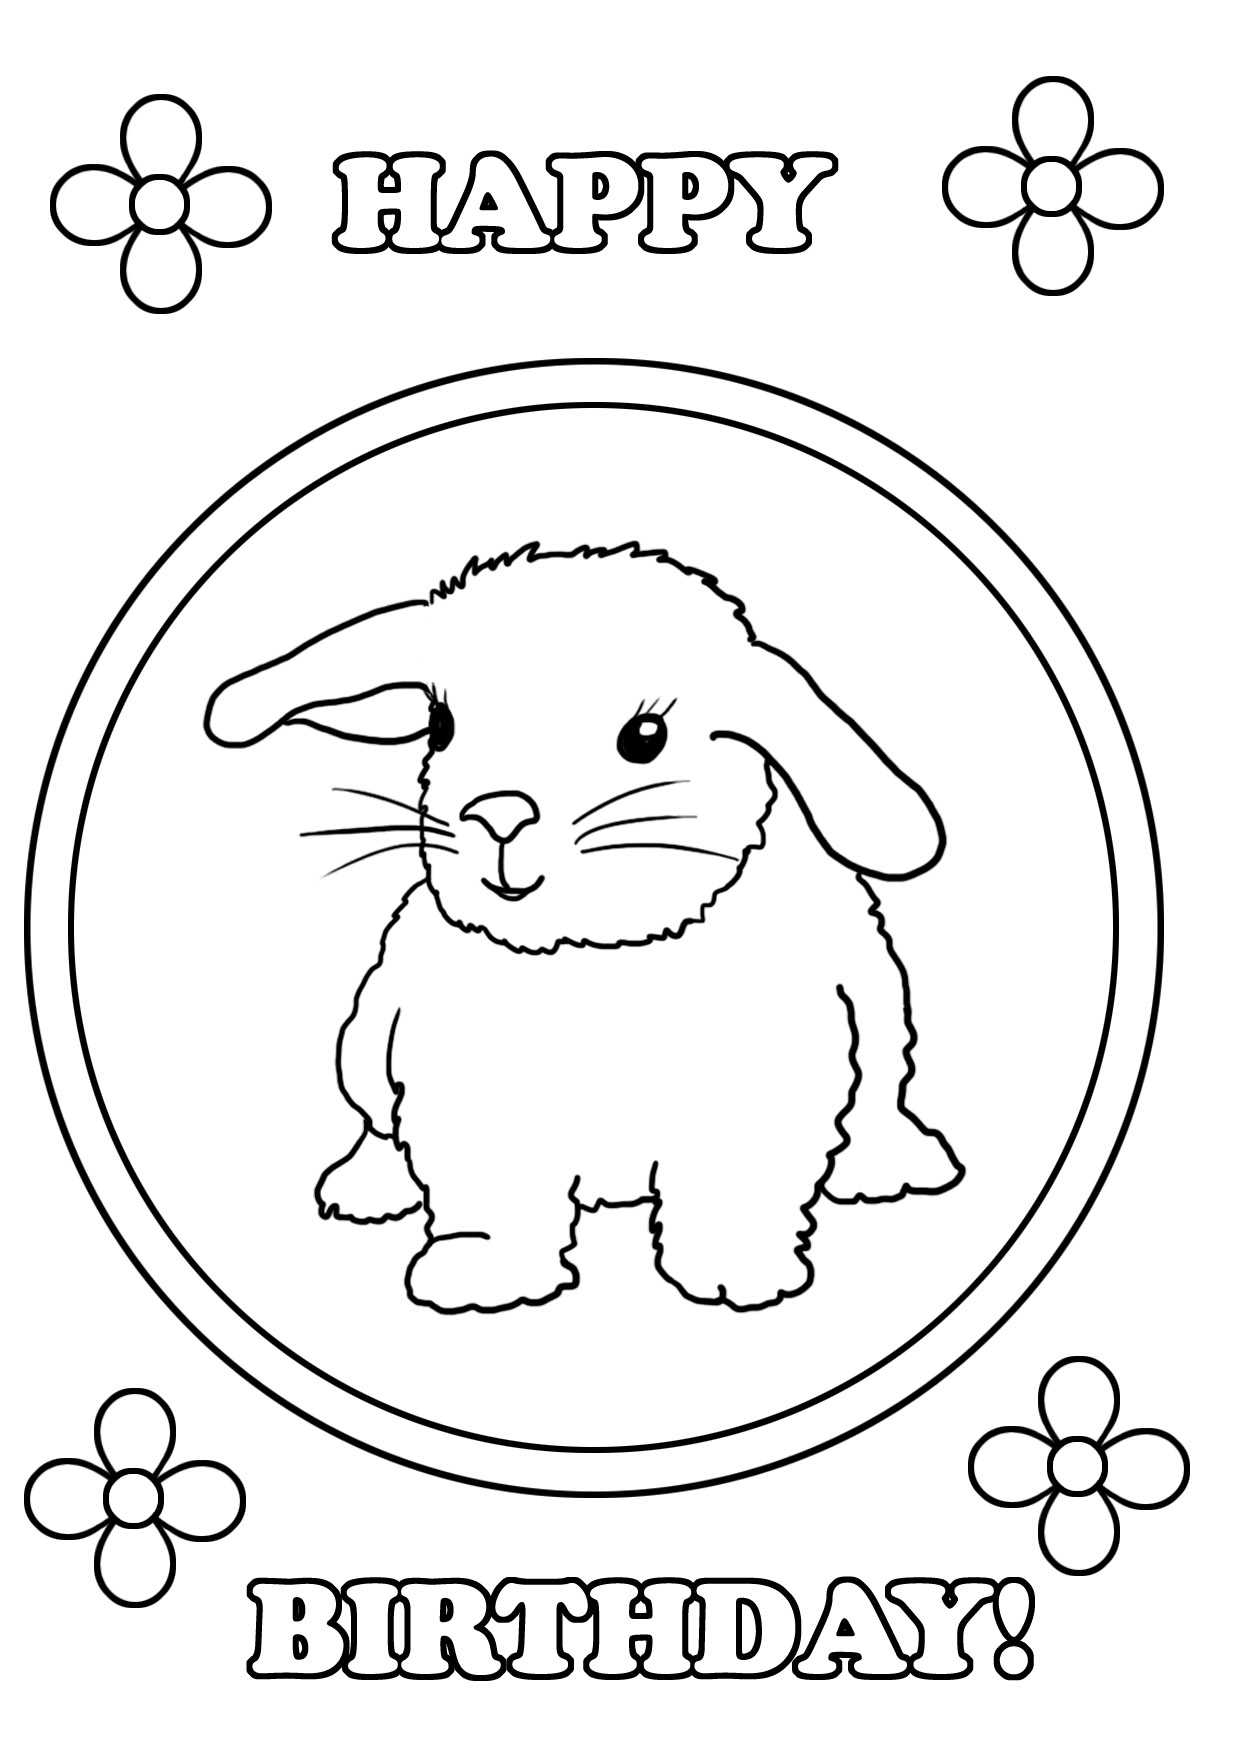 happybunny coloring pages | Birthday Coloring Pages